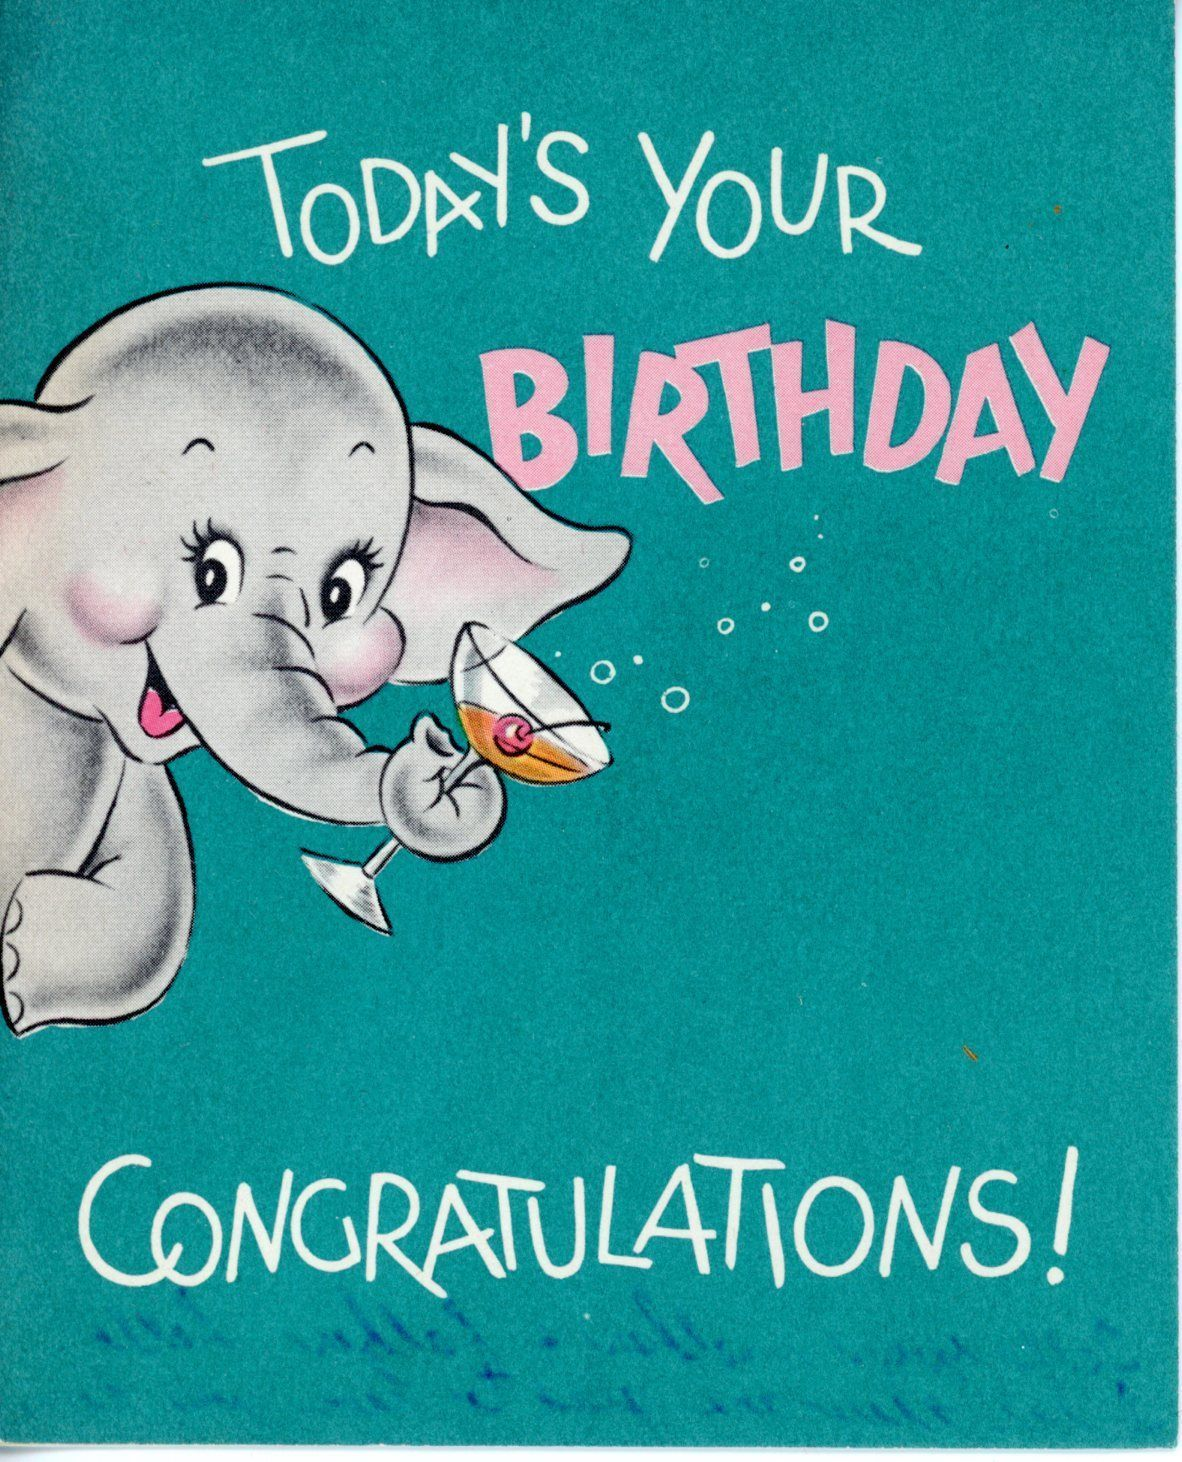 Vintage Norcross Birthday Greeting Card Elephant W Cocktail 1718 For Sale 3 00 See Photos Mon Vintage Birthday Cards Birthday Greetings Vintage Birthday